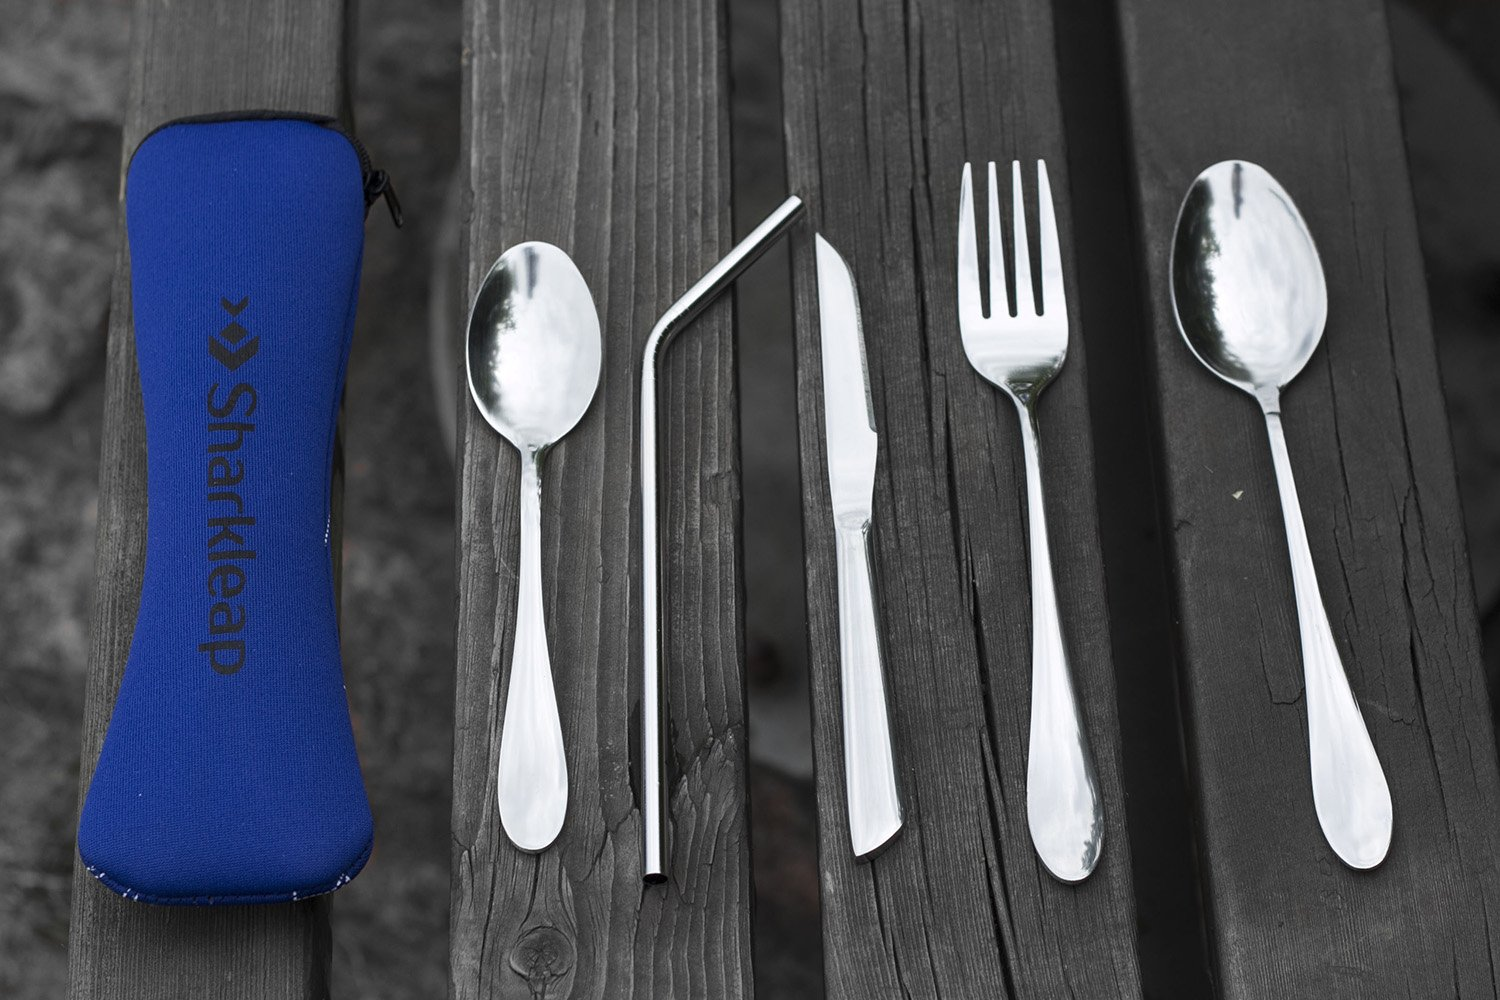 Sharkleap 5 Pieces Stainless Steel Utensil Set with Neoprene Case   Lightweight Cutlery Kit for School, College, Work, Camping and Other Outdoor Activities by Sharkleap (Image #4)